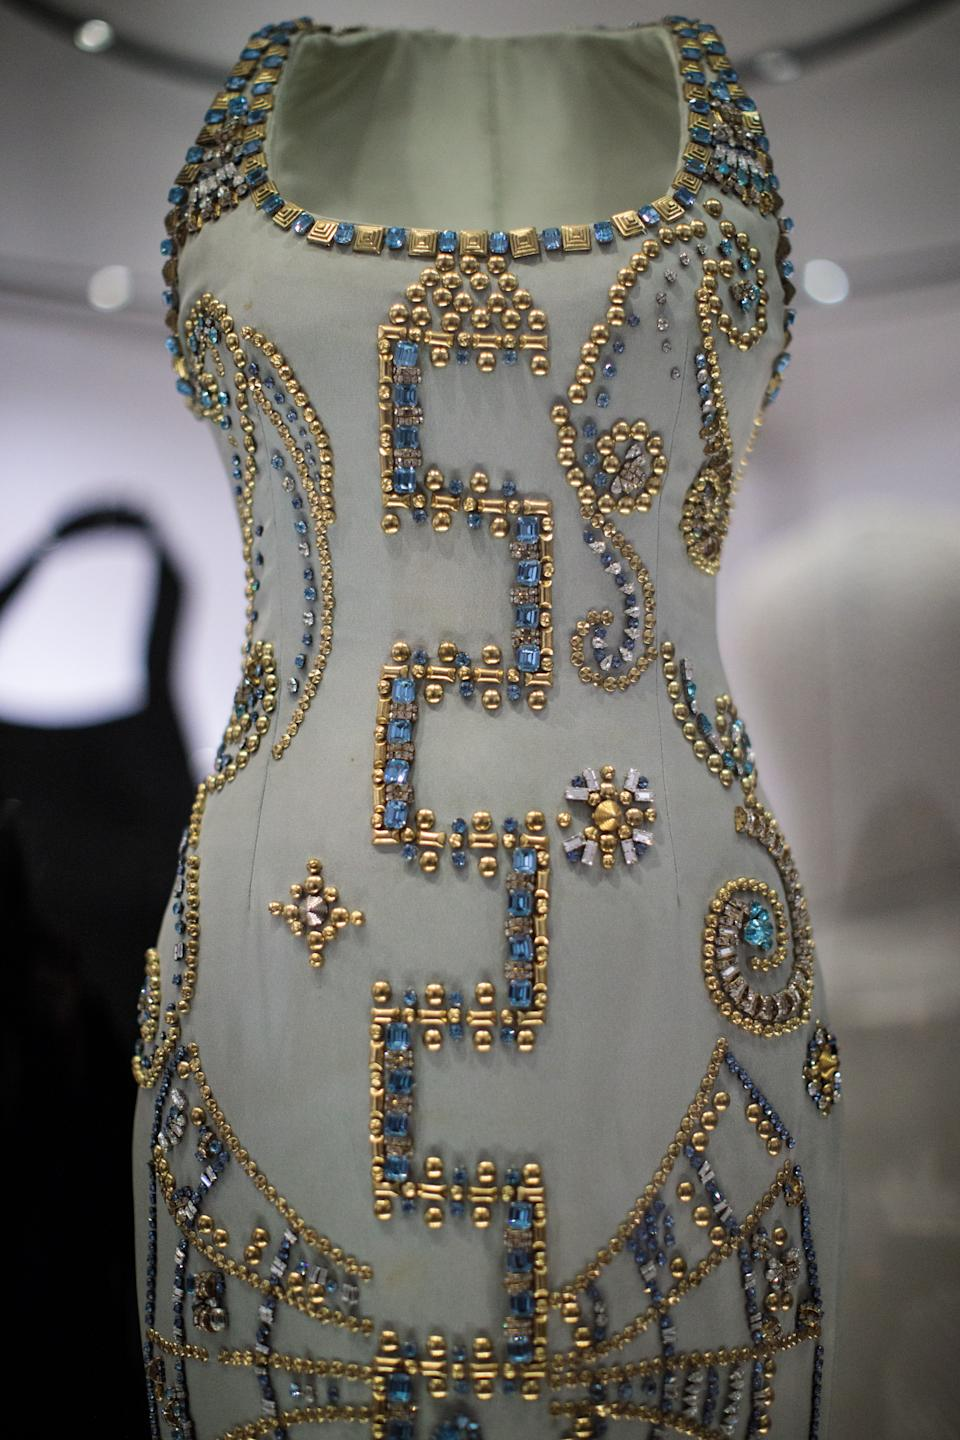 LONDON, ENGLAND - FEBRUARY 22: A 1991 Atelier Versace silk gown worn by Princess Diana at a Harper's Bazaar photoshoot with Patrick Demarchelier on display at a press preview at Kensington Palace on February 22, 2017 in London, England. The exhibition 'Diana: Her Fashion Story', which showcases a number of the Princess' dresses and outfits, opens to the public on February 24 as part of events commemorating the life of Princess Diana to mark the 20th anniversary of her death in Paris on August 31st, 1997.  (Photo by Jack Taylor/Getty Images)